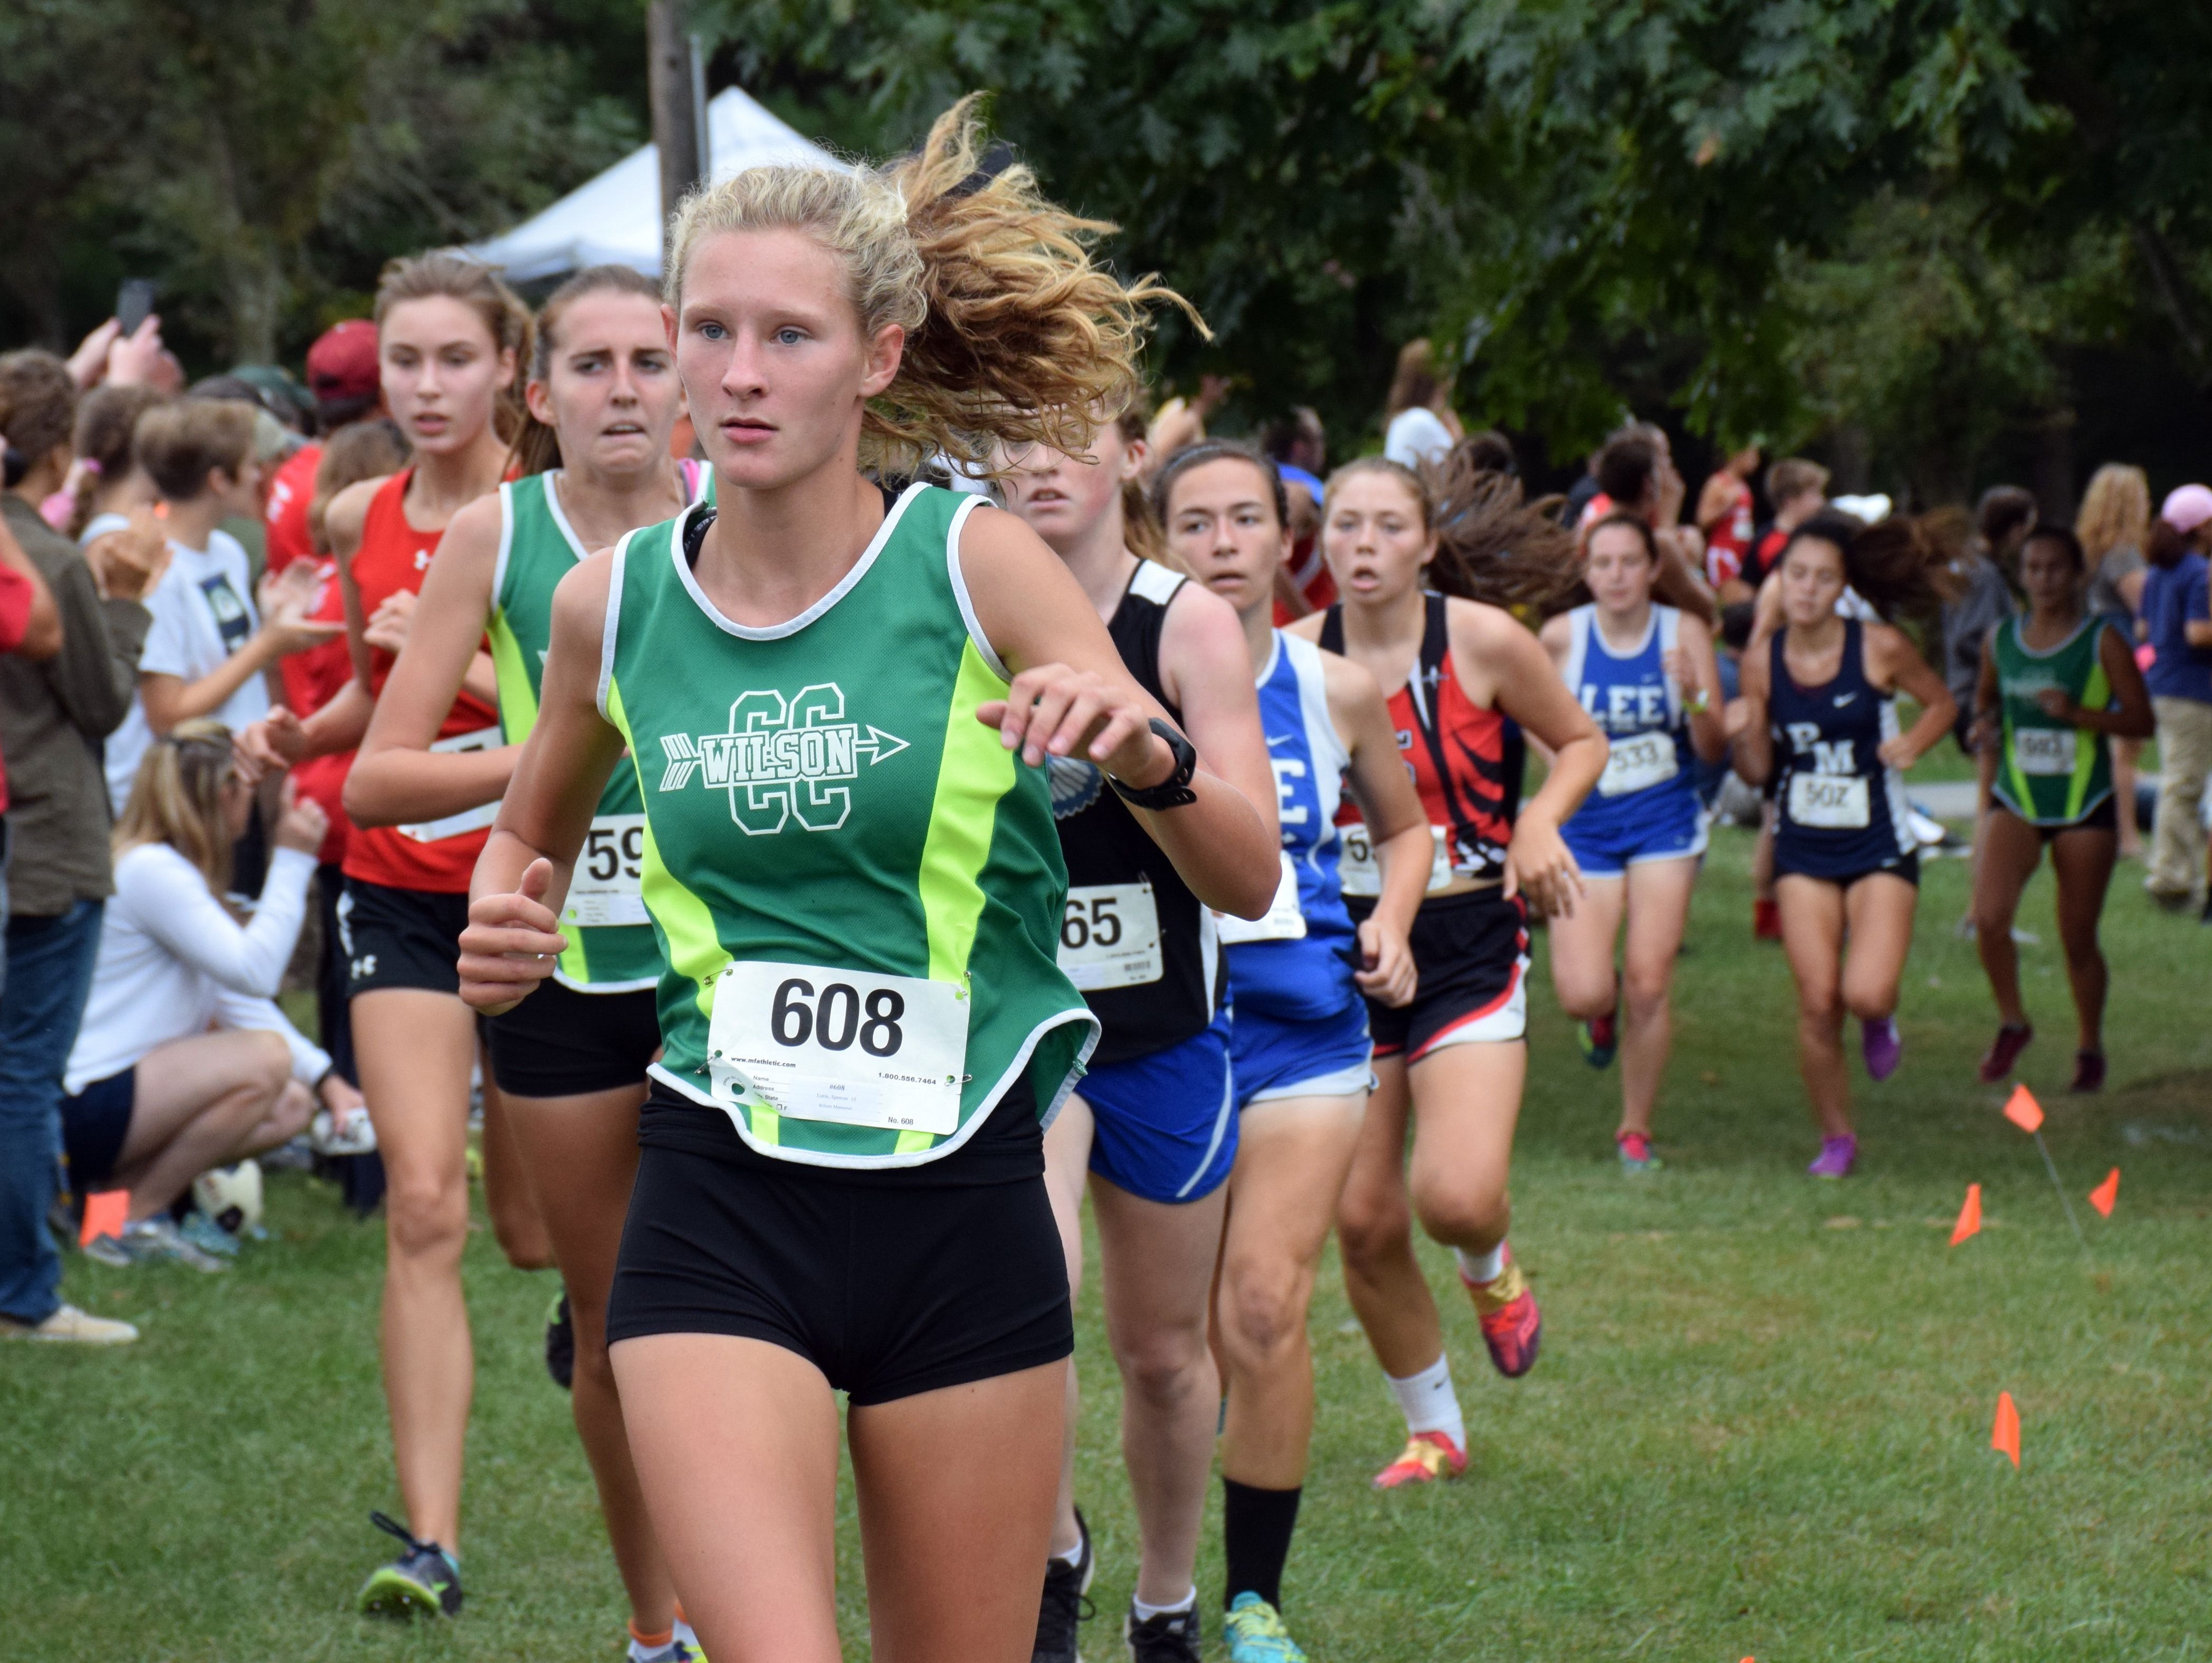 Wilson Memorial's Spencer Tuttle leads a pack of runners chasing the leads during the varsity girls race race at the Augusta County Cross Country Invitational at Wilson Workforce and Rehabilitation Center in Fishersville, Va., on Saturday, Sept. 17, 2016.